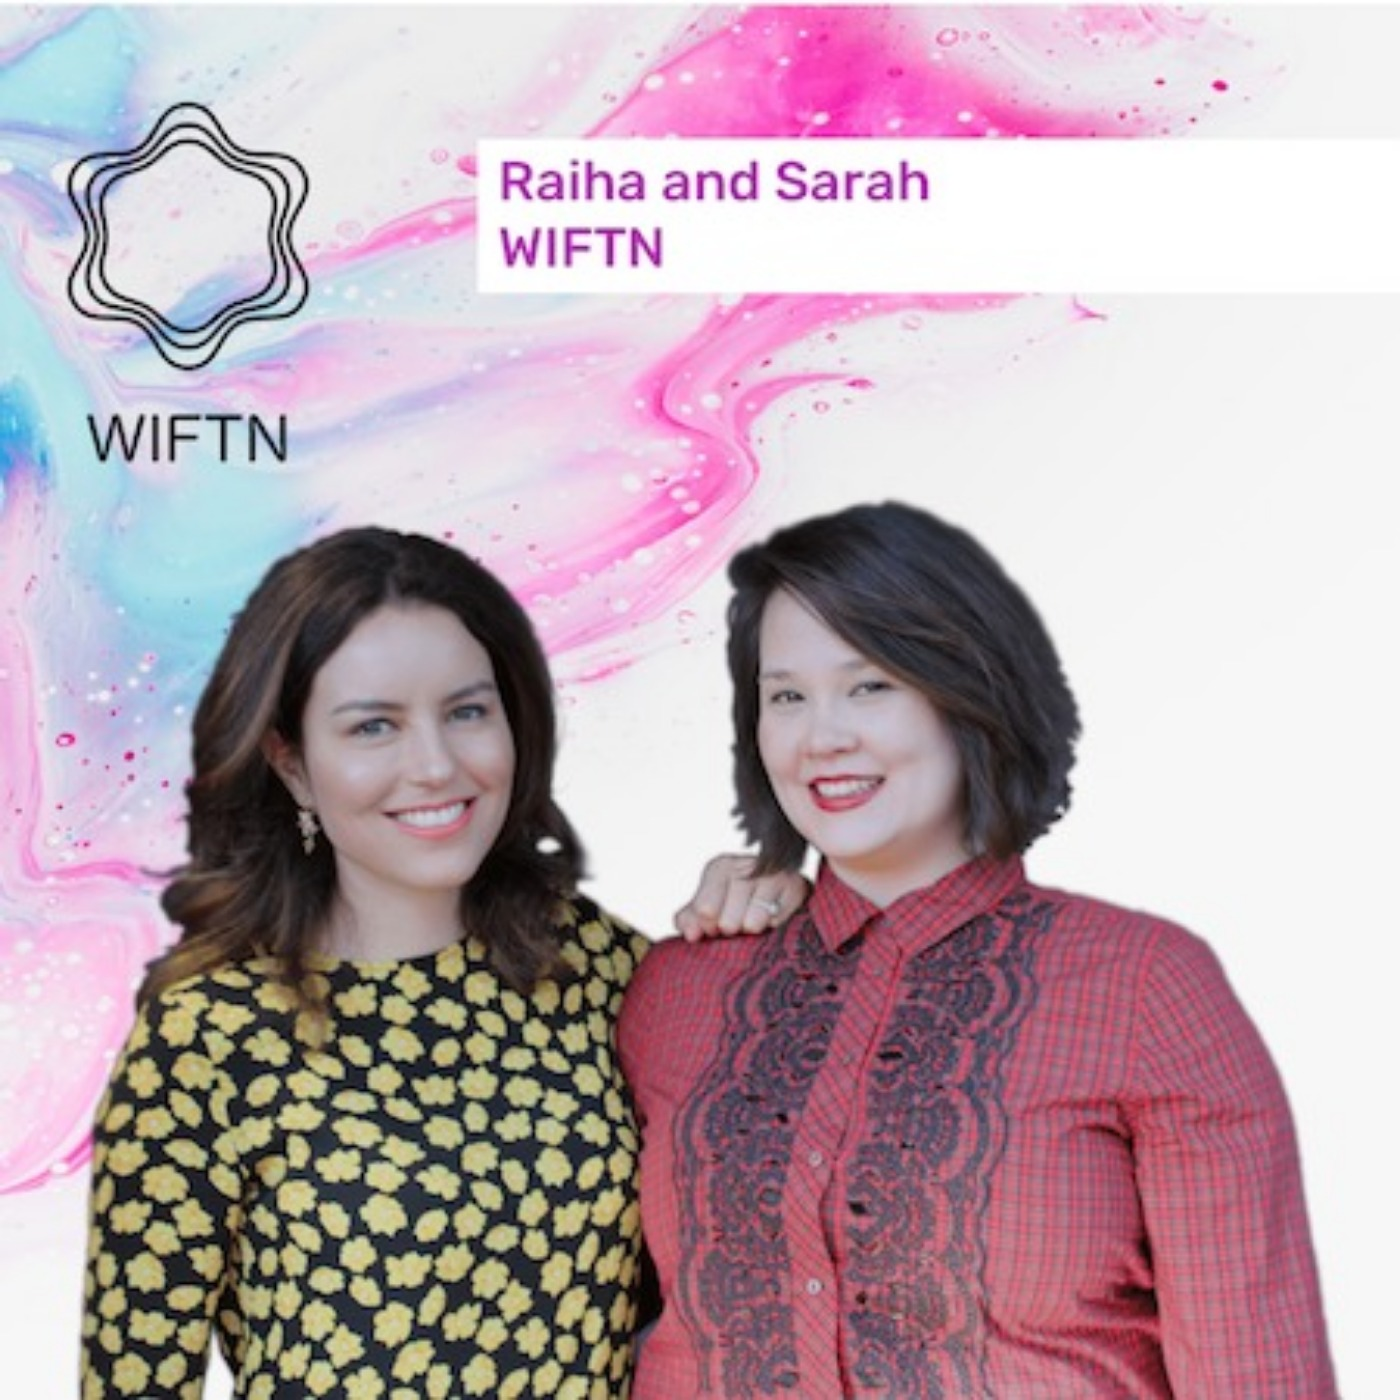 Episode 1: Raiha and Sarah